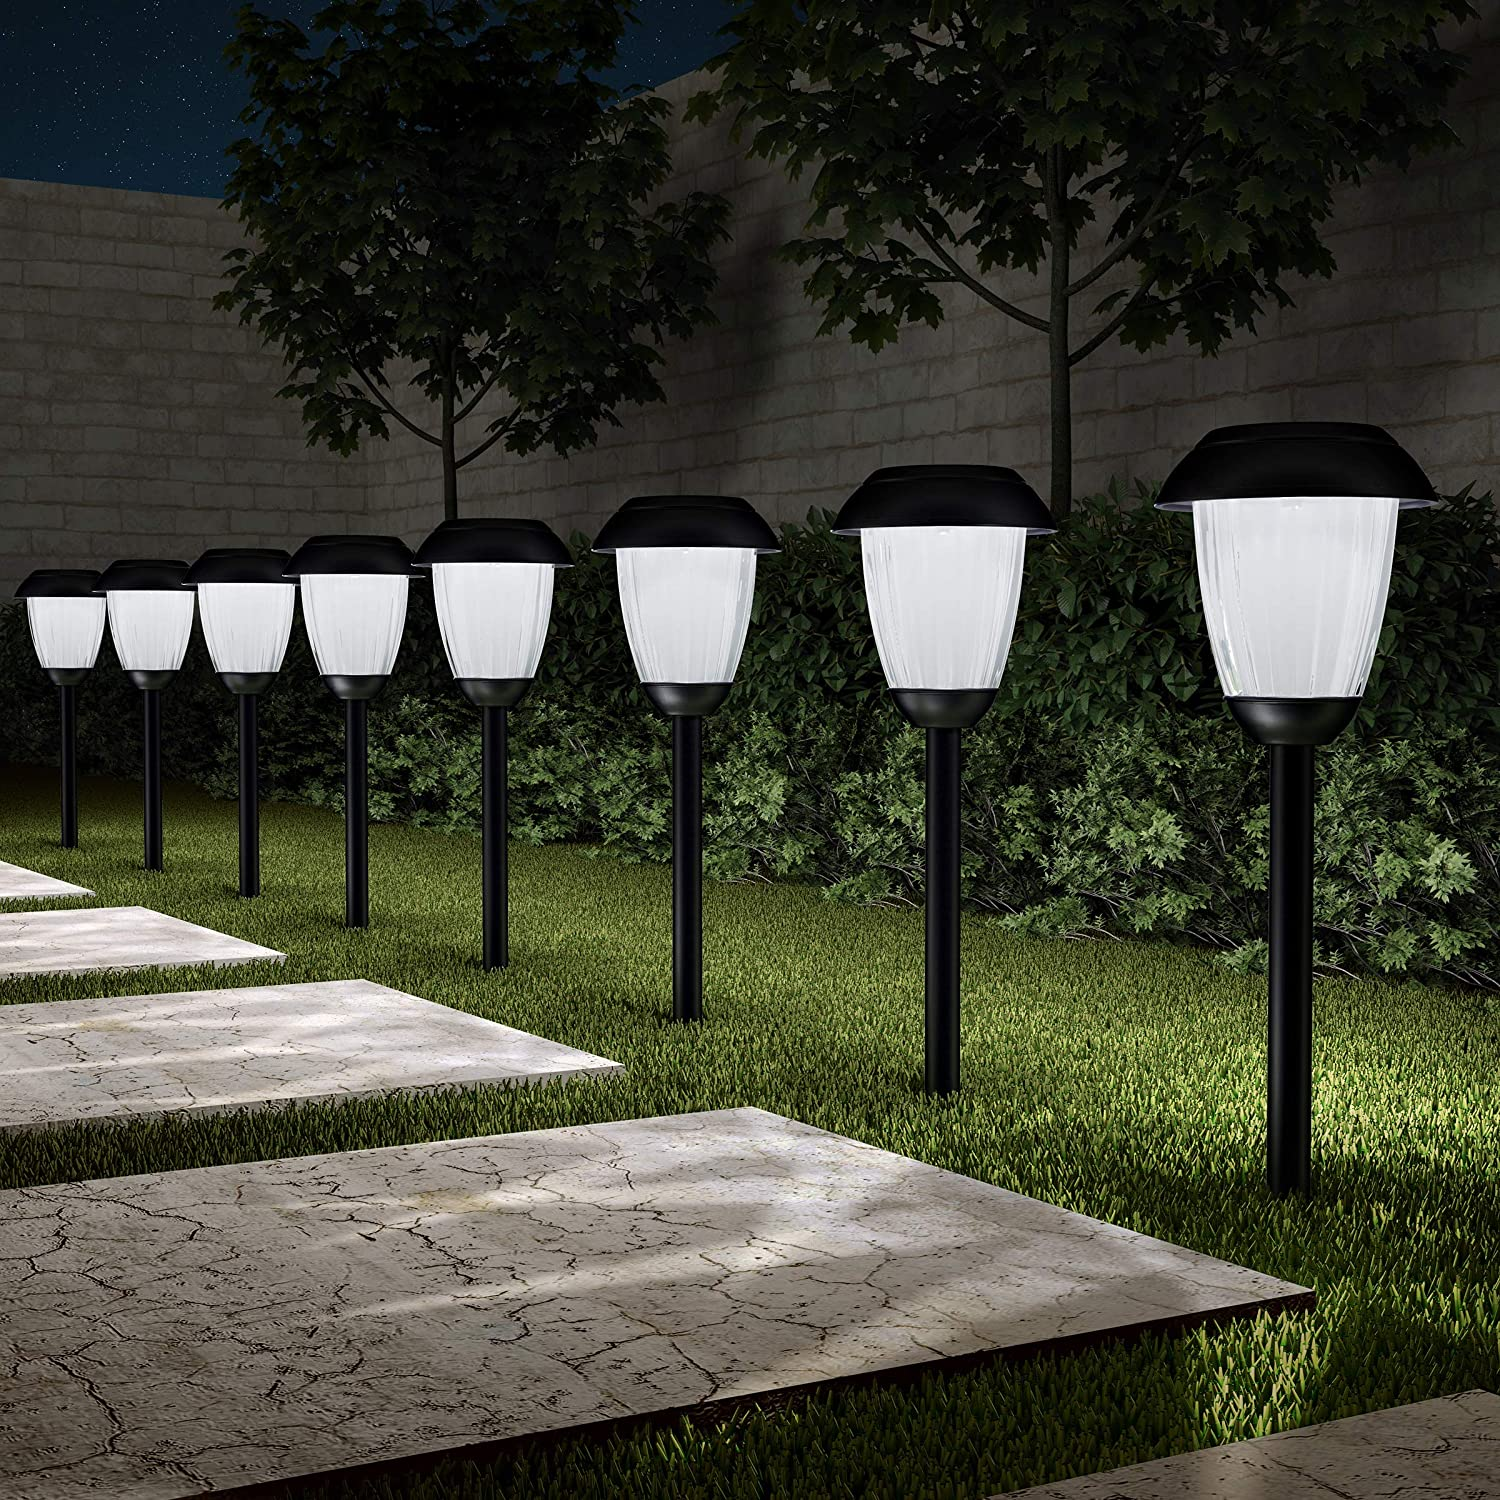 """Pure Garden 50-LG1058 Solar Path, Set of 8-16"""" Tall Stainless Steel Outdoor Stake Lighting for Garden, Landscape, Yard, Driveway, Walkway, Black"""